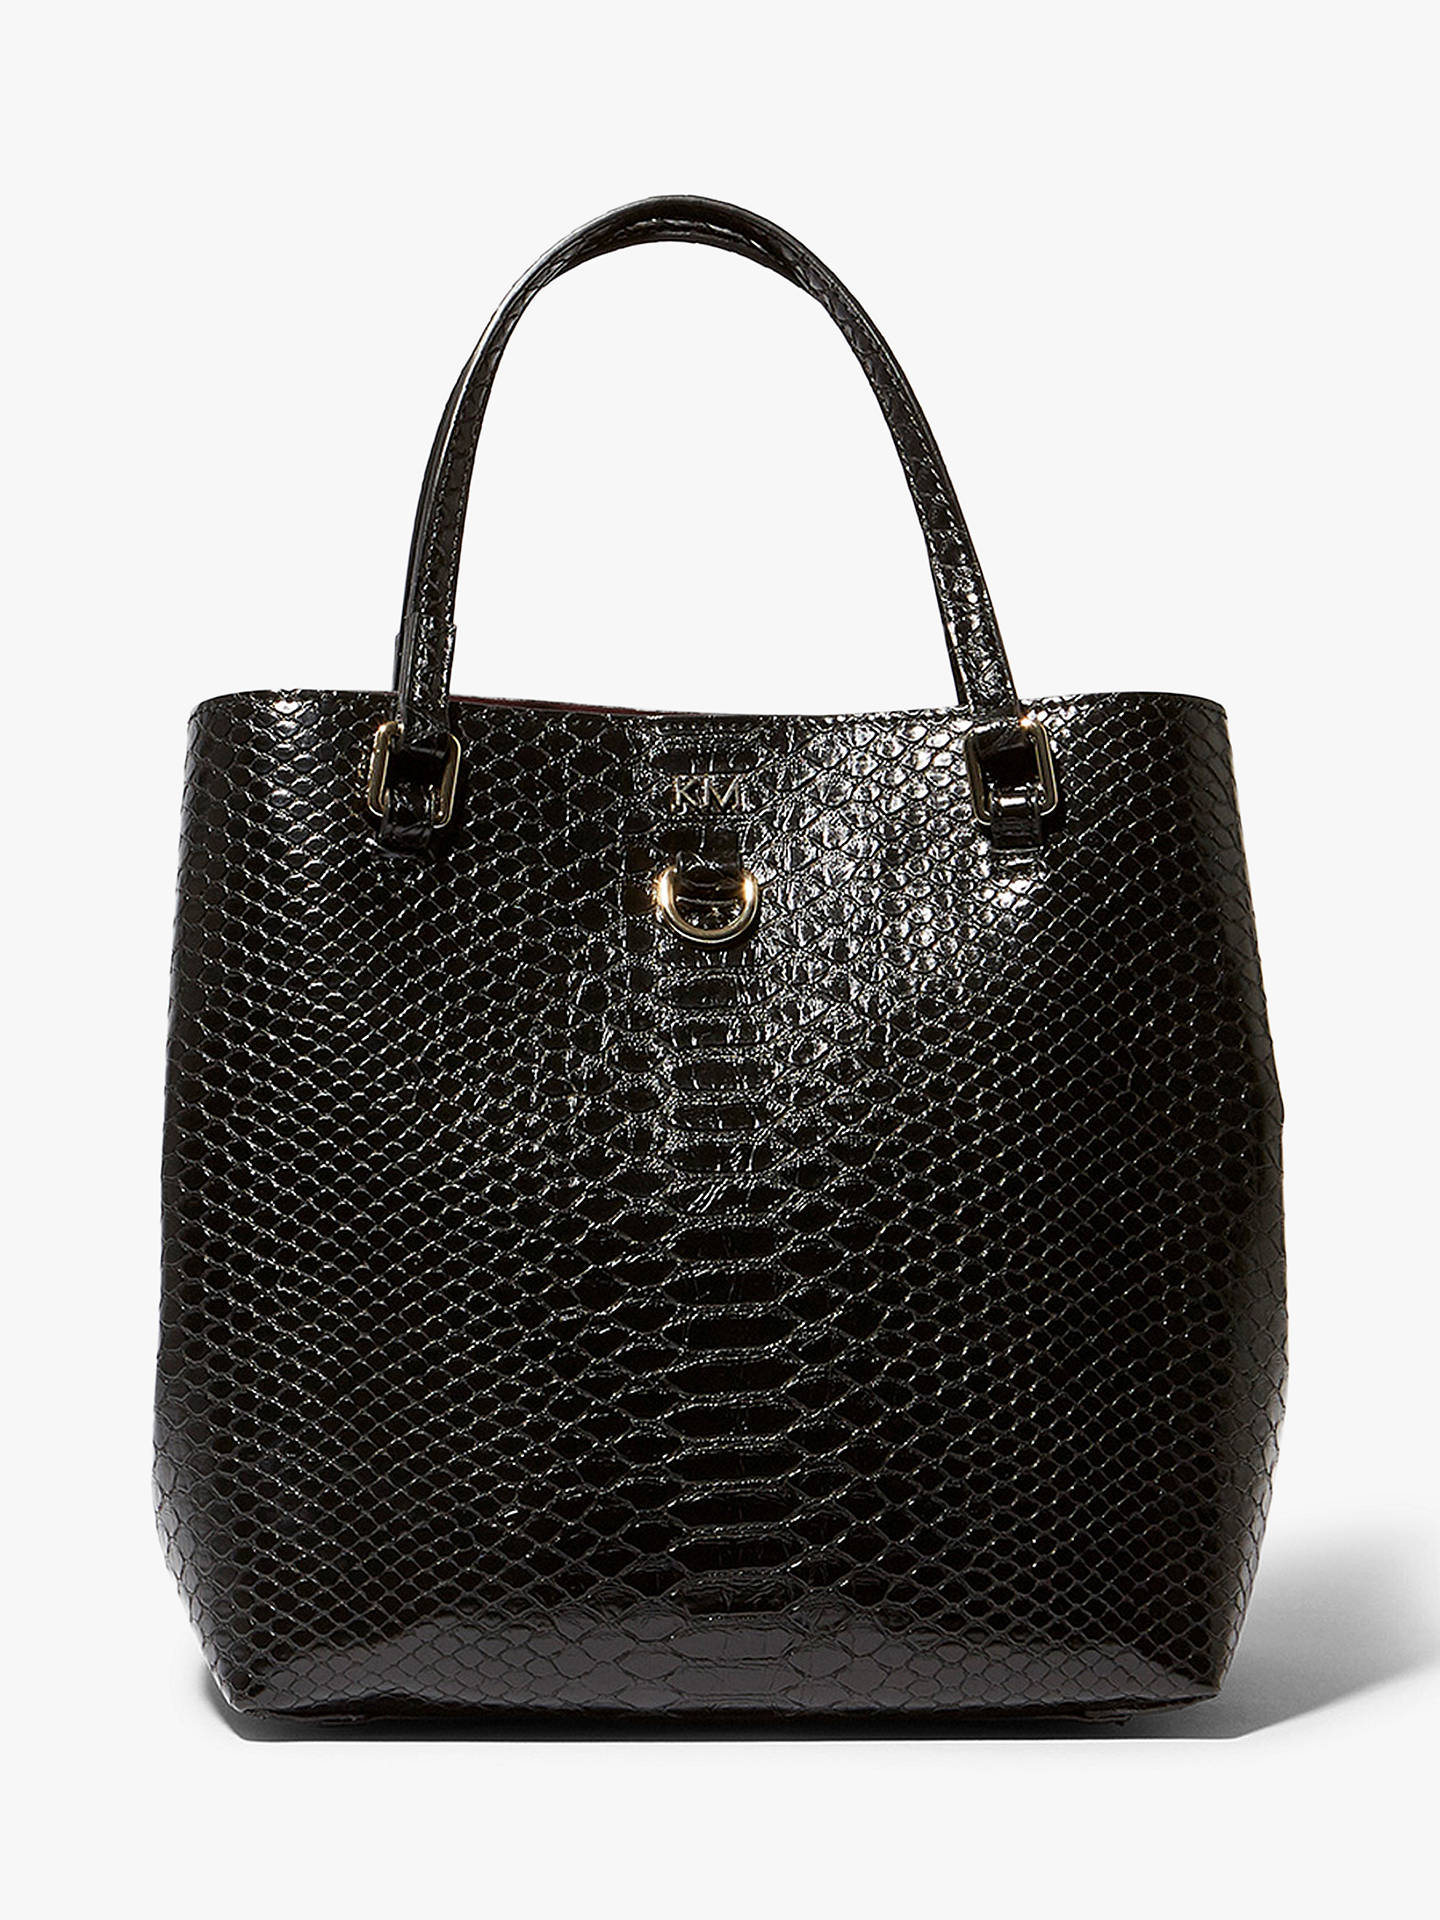 c69312a7695 Buy Karen Millen Snakeskin Shoulder Bag, Black Online at johnlewis.com ...